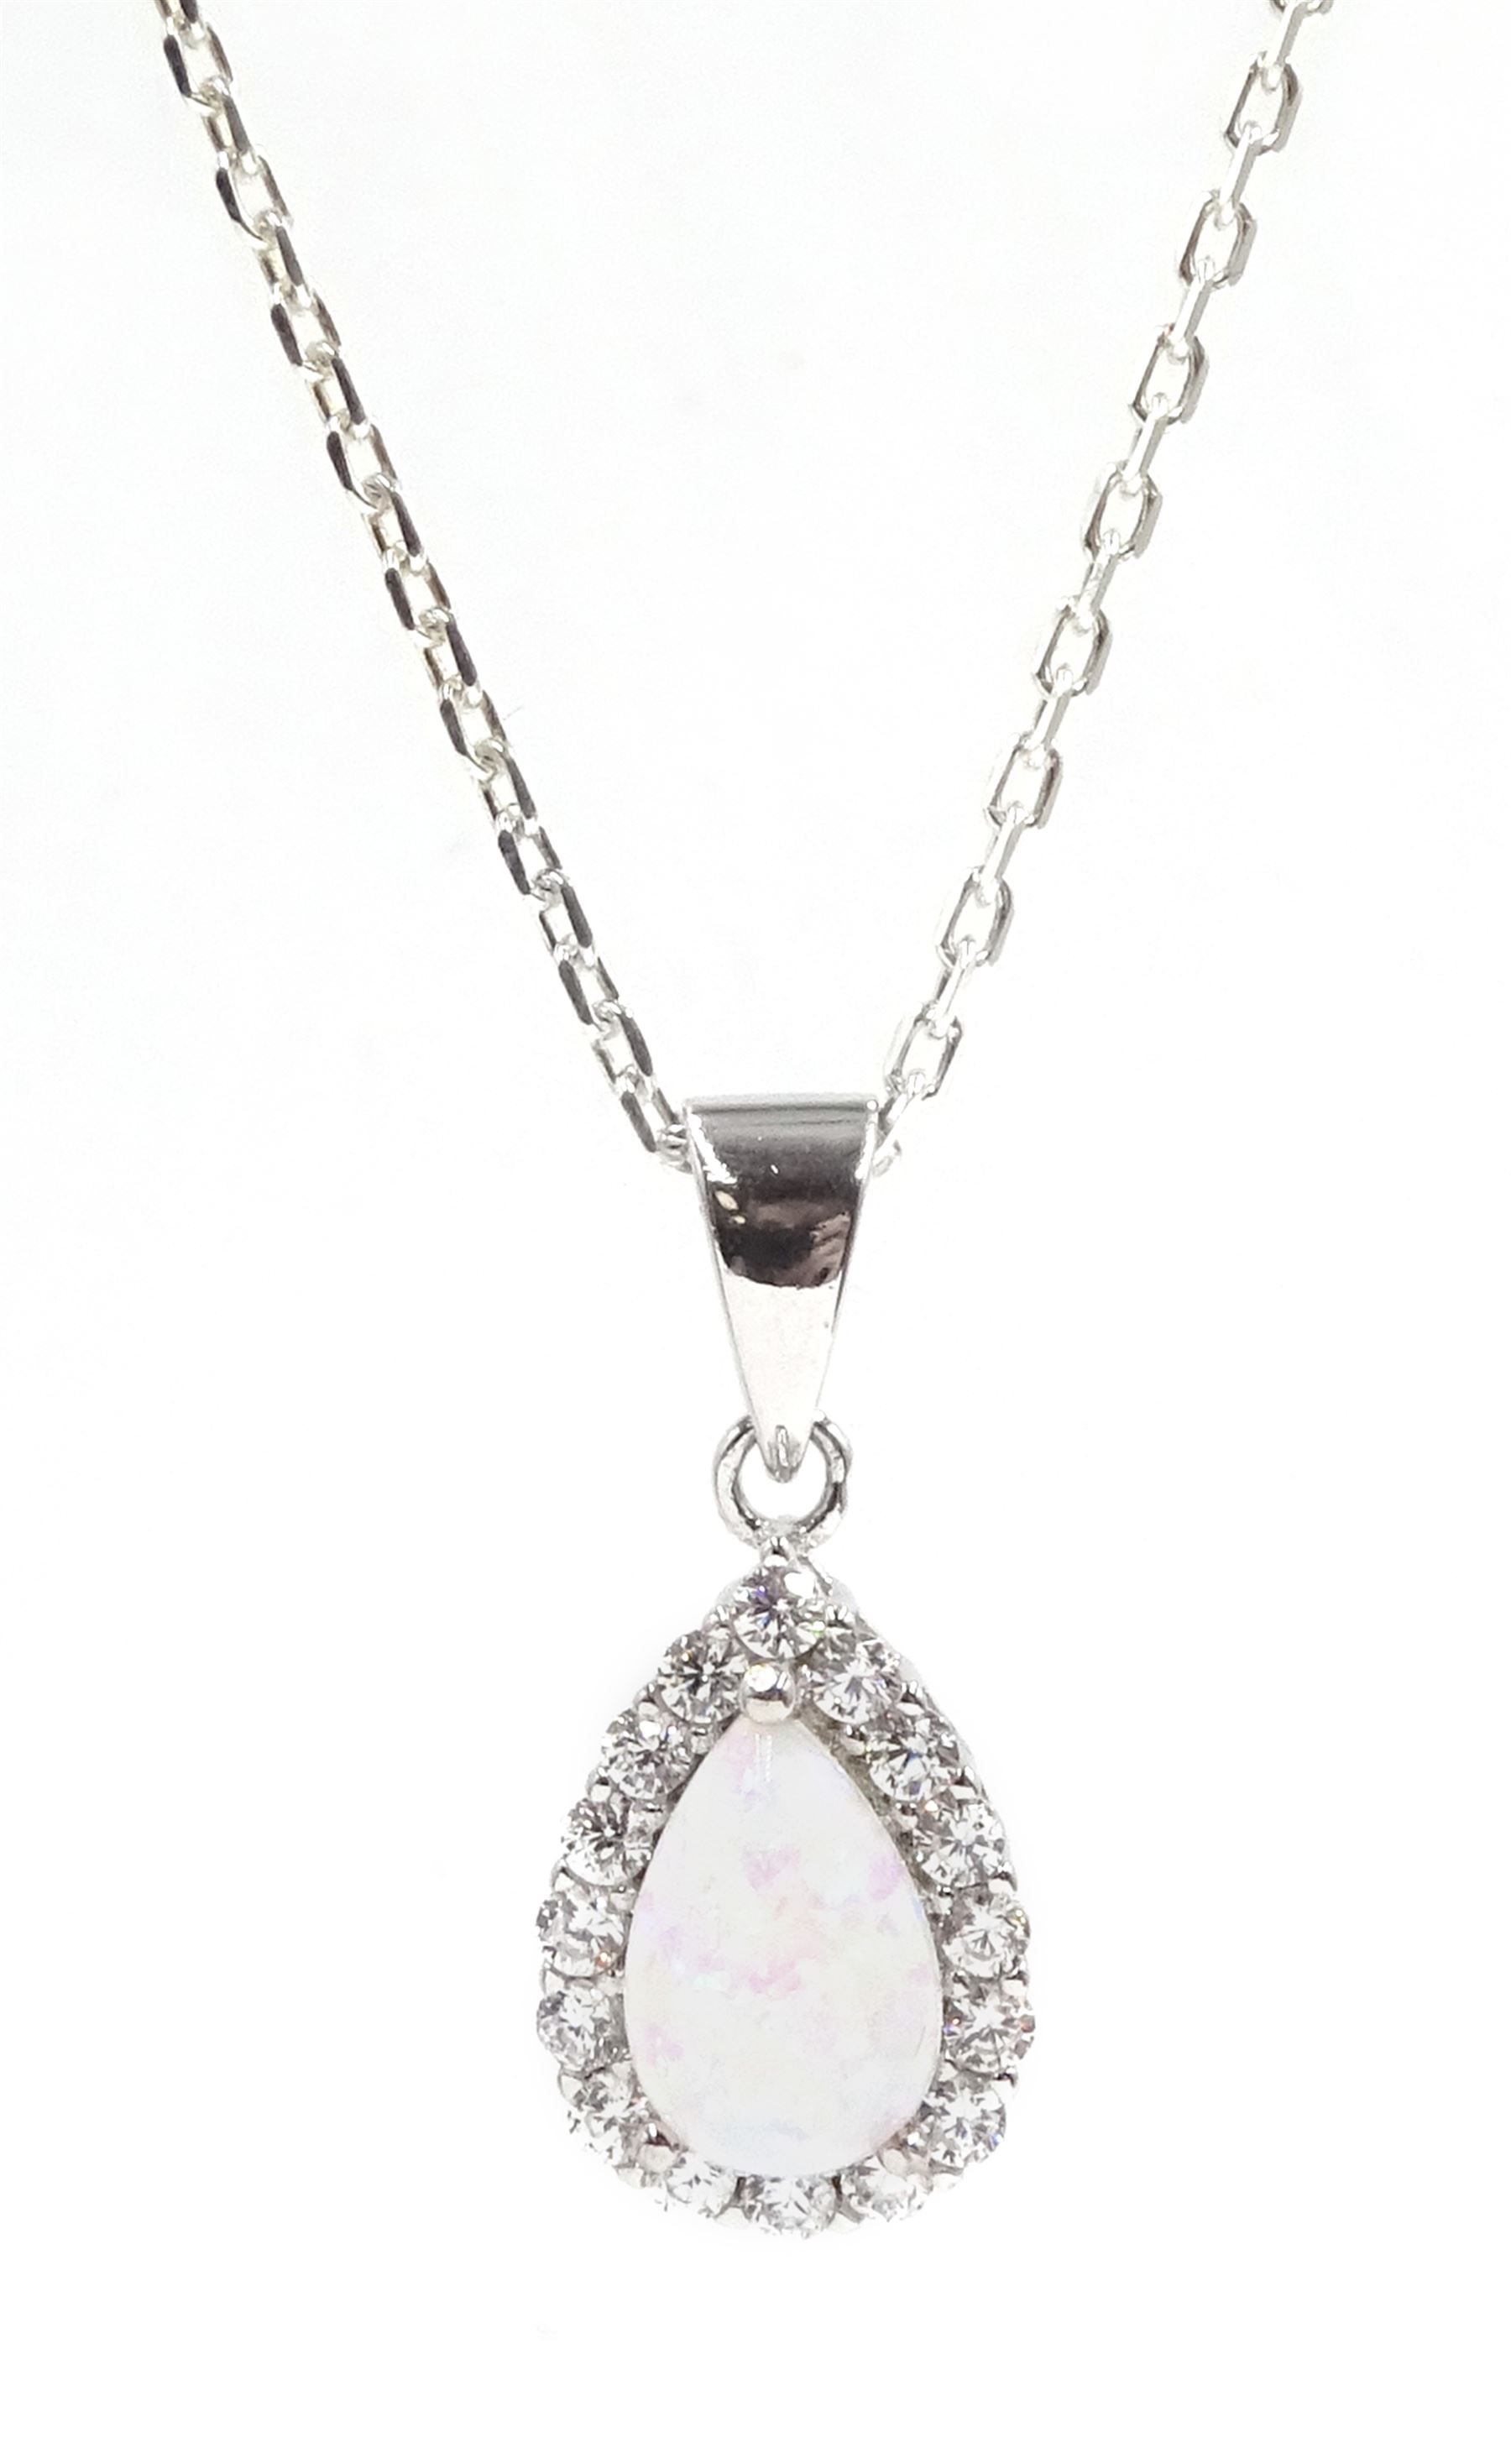 Silver opal and cubic zirconia pendant necklace